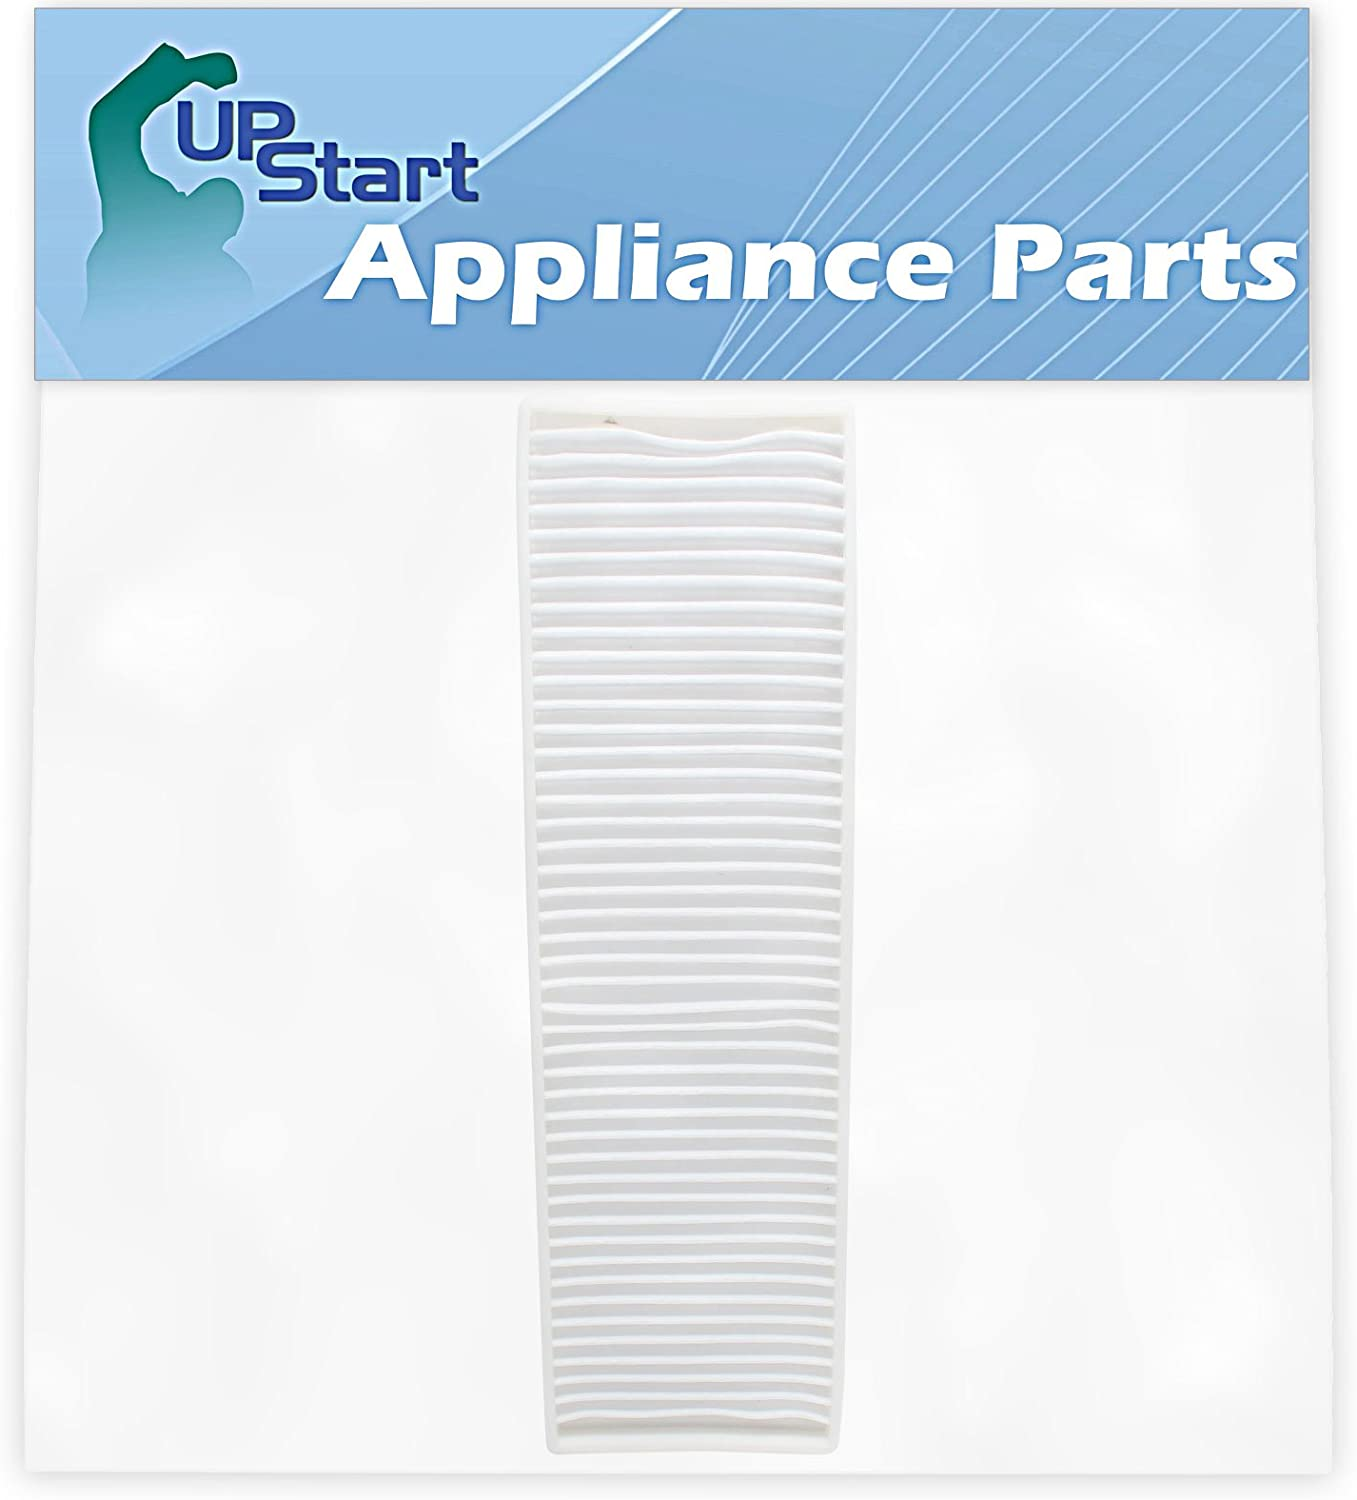 Replacement Style 7 Filter for Bissell - Compatible with Bissell Style 7, Bissell Style 9, Bissell 82H1, Bissell Style 16, Bissell 6591, Bissell 8975, Bissell 3576-6, Bissell 3576-2, Bissell 3576, Bissell 32076, Bissell 3522